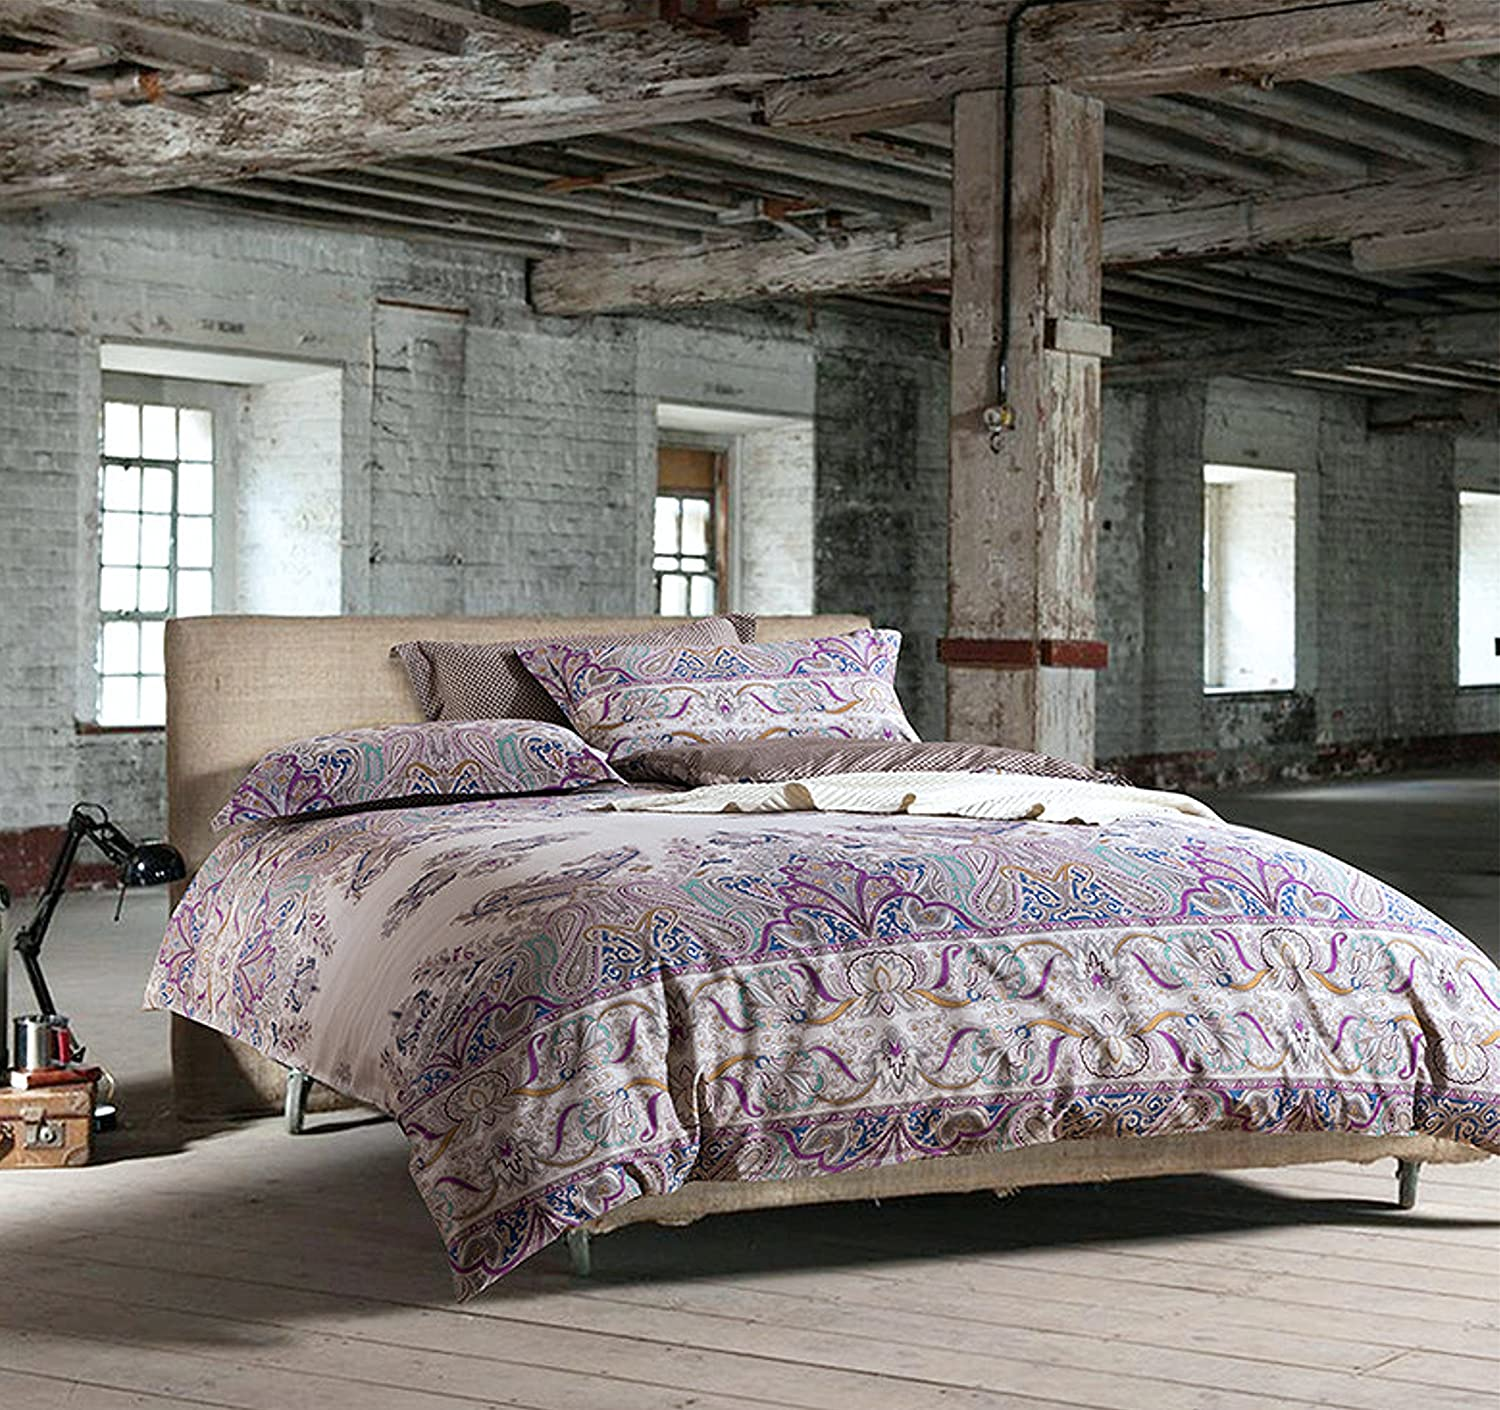 tahari bed thinkpawsitive comforter bohemian sheets co